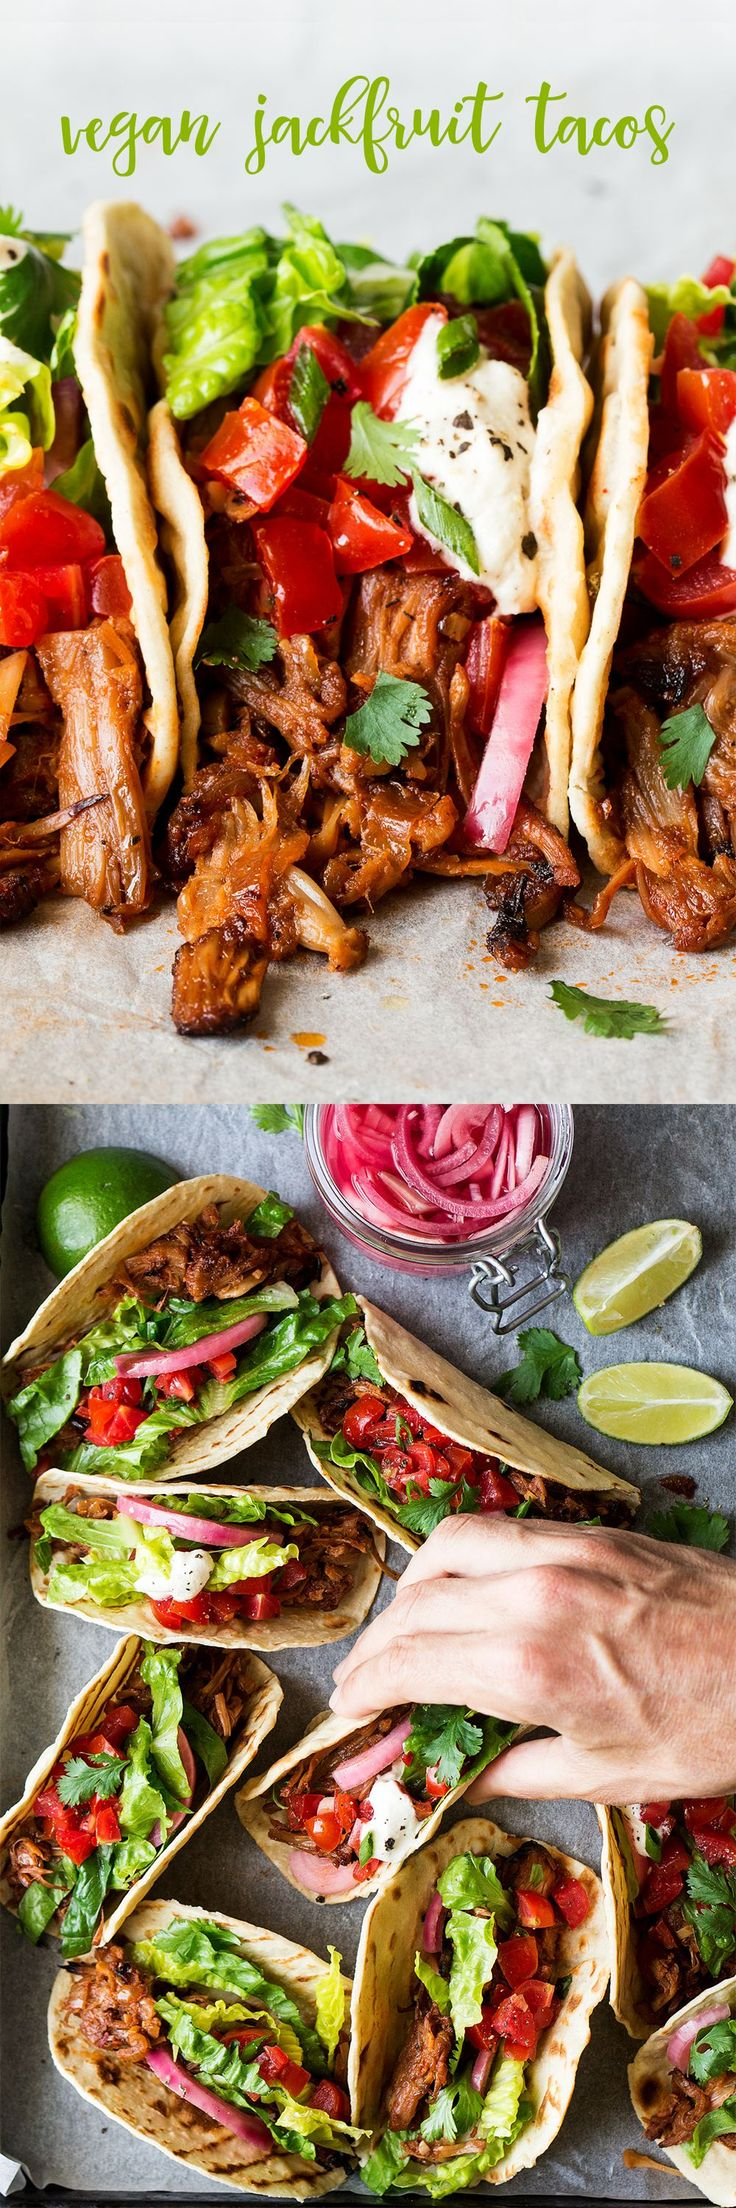 Jackfruit can take any meal to the next level—including these meaty, fresh tacos from Lazy Cat Kitchen.